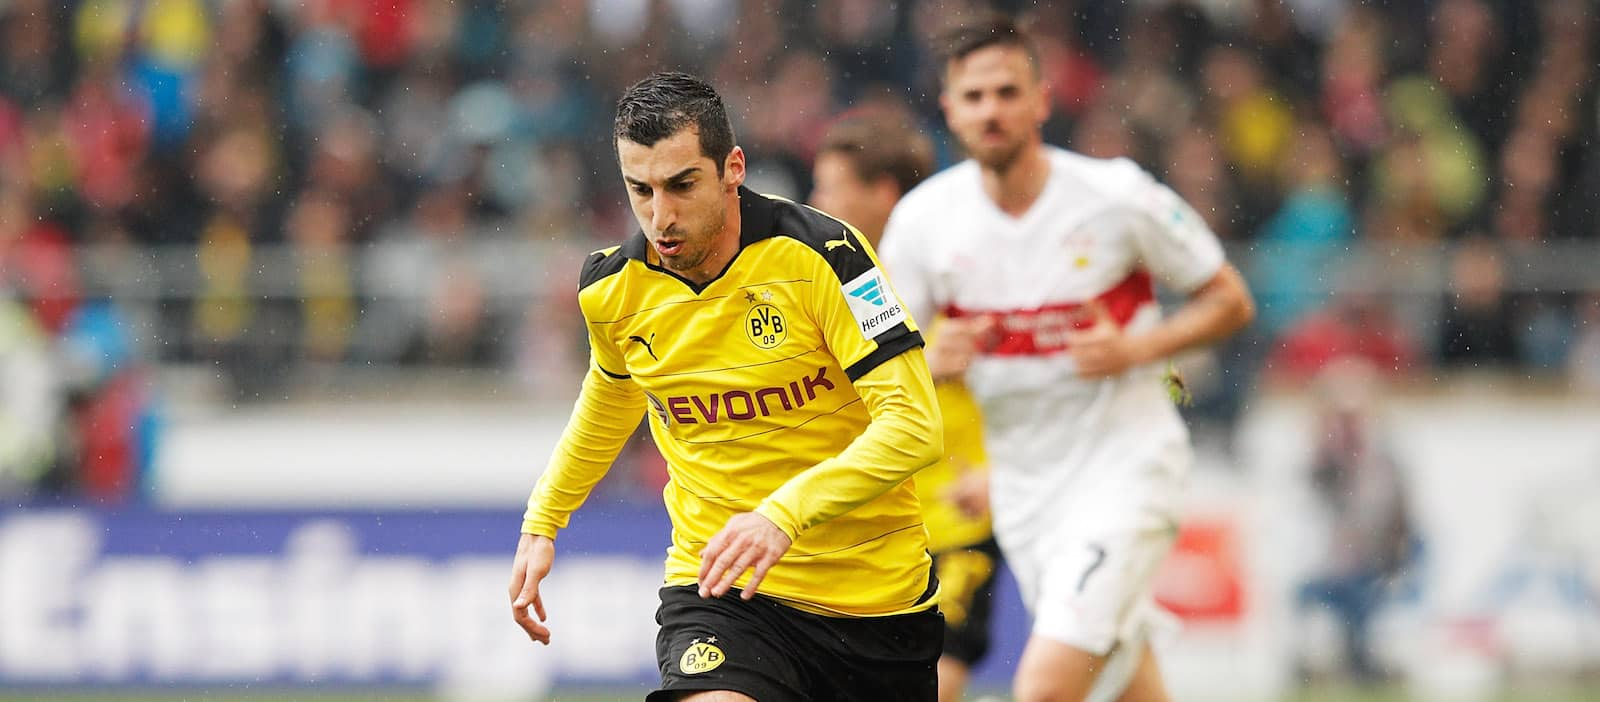 Mkhitaryan texts Dortmund manager Tuchel to say he's joining Man United